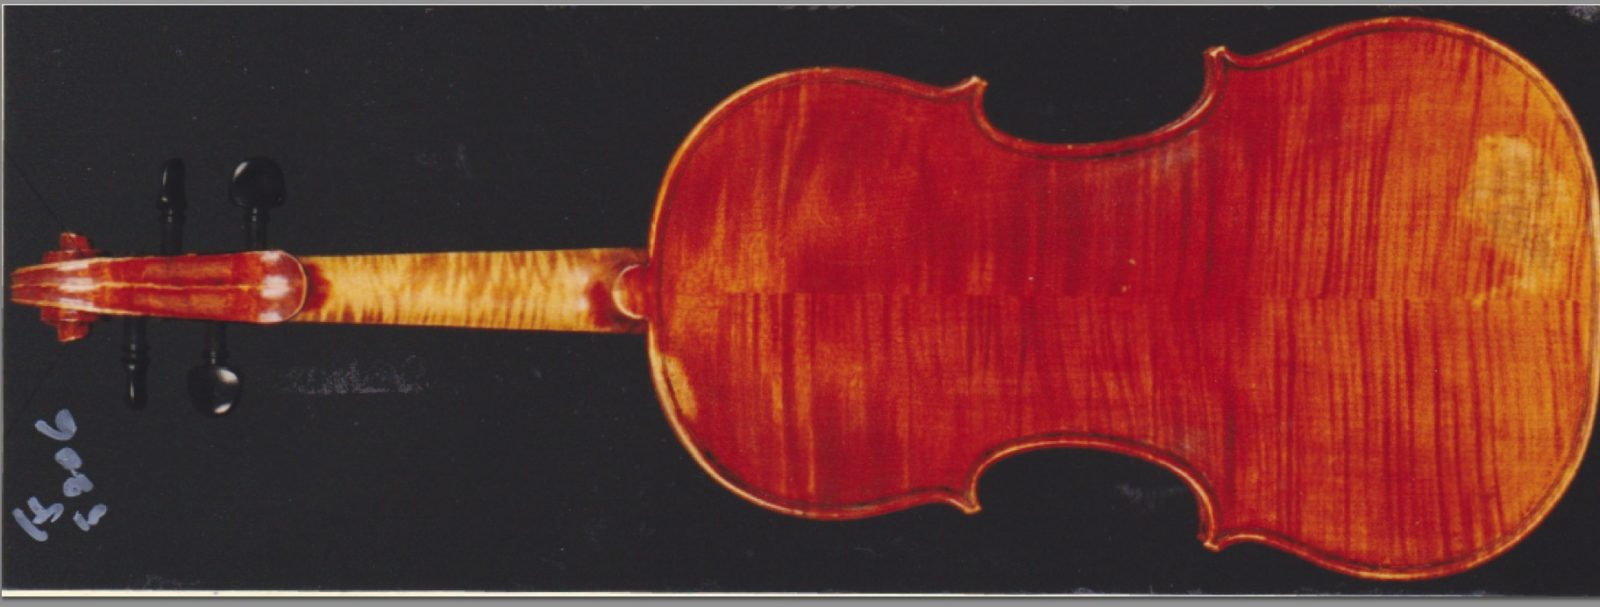 Stolen Violin Georgetown Washington Gaetano Sgarabotto